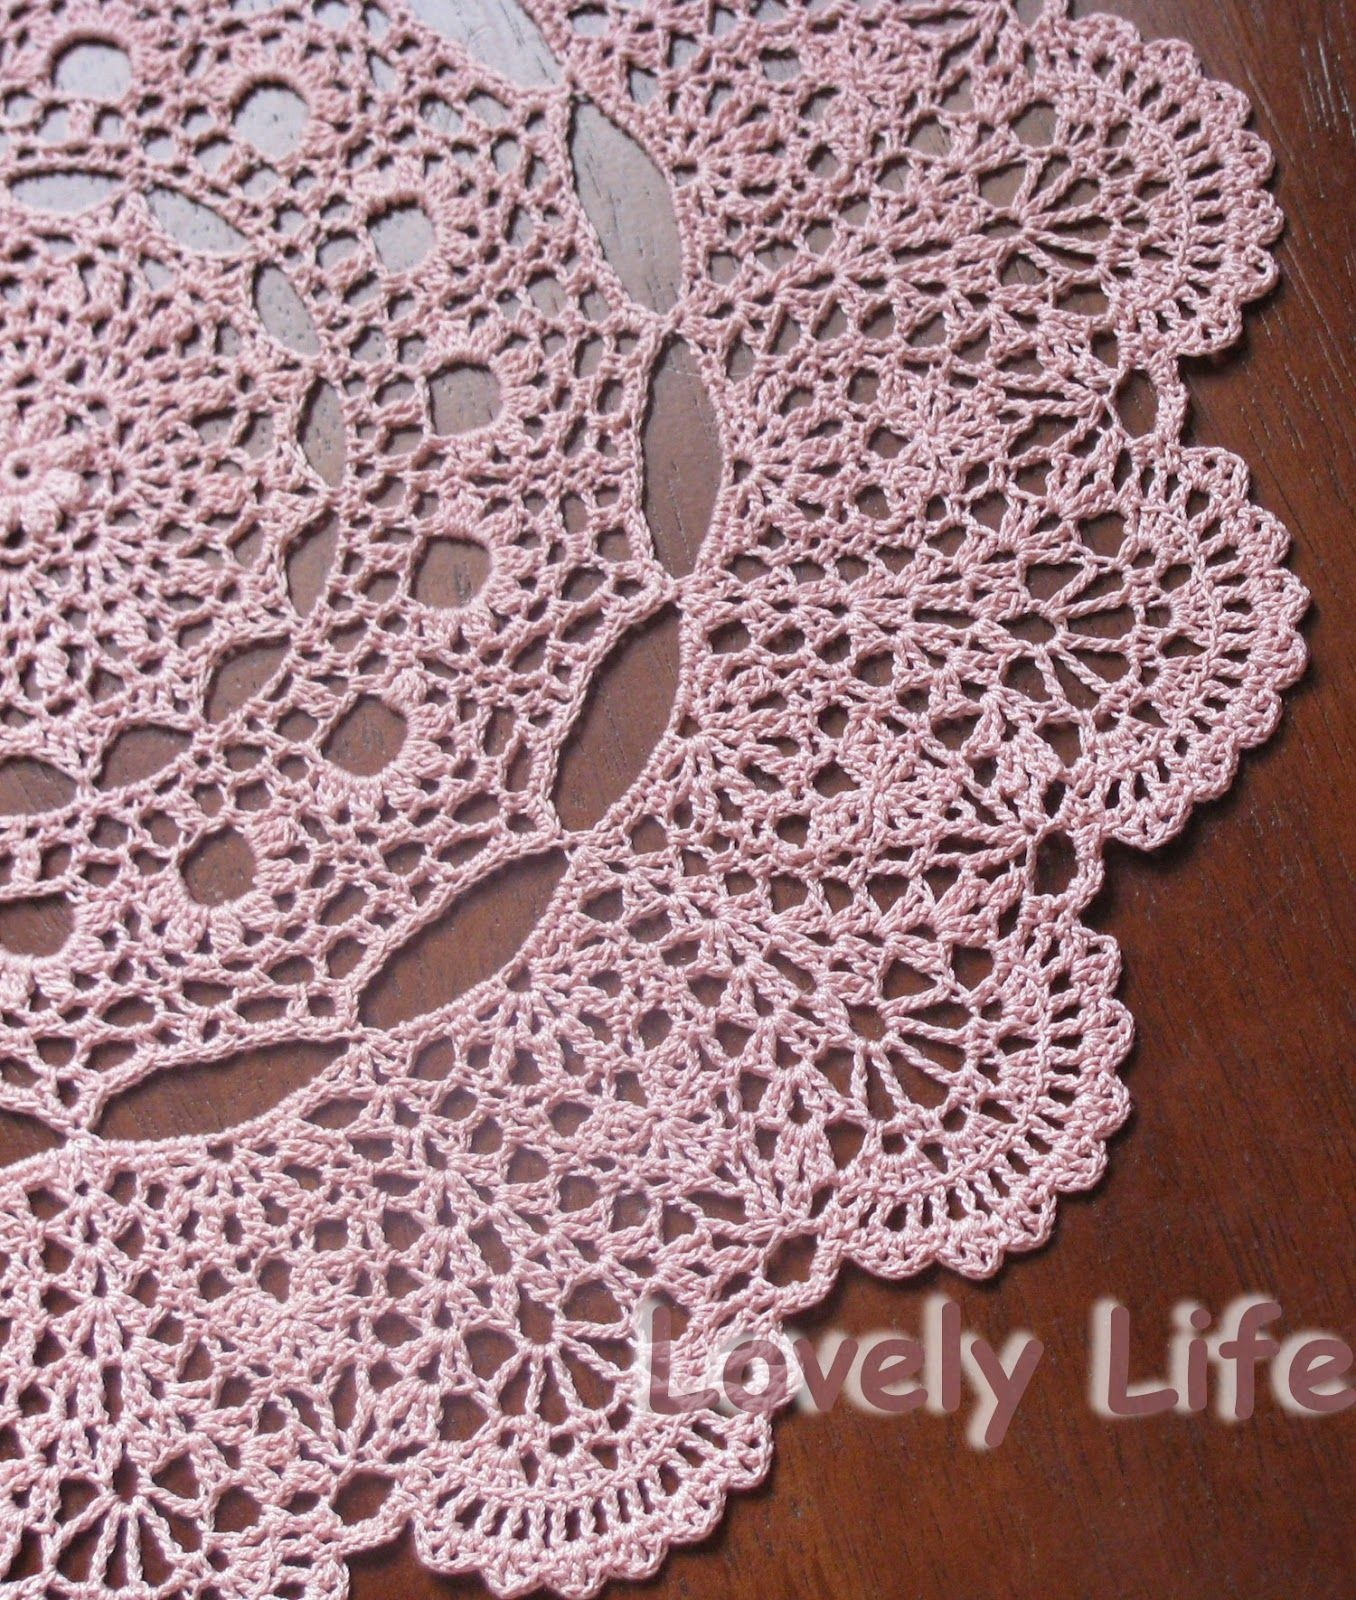 Free Printable Crochet Doily Patterns | Mantilla Doily - Close Up - Free Printable Crochet Patterns